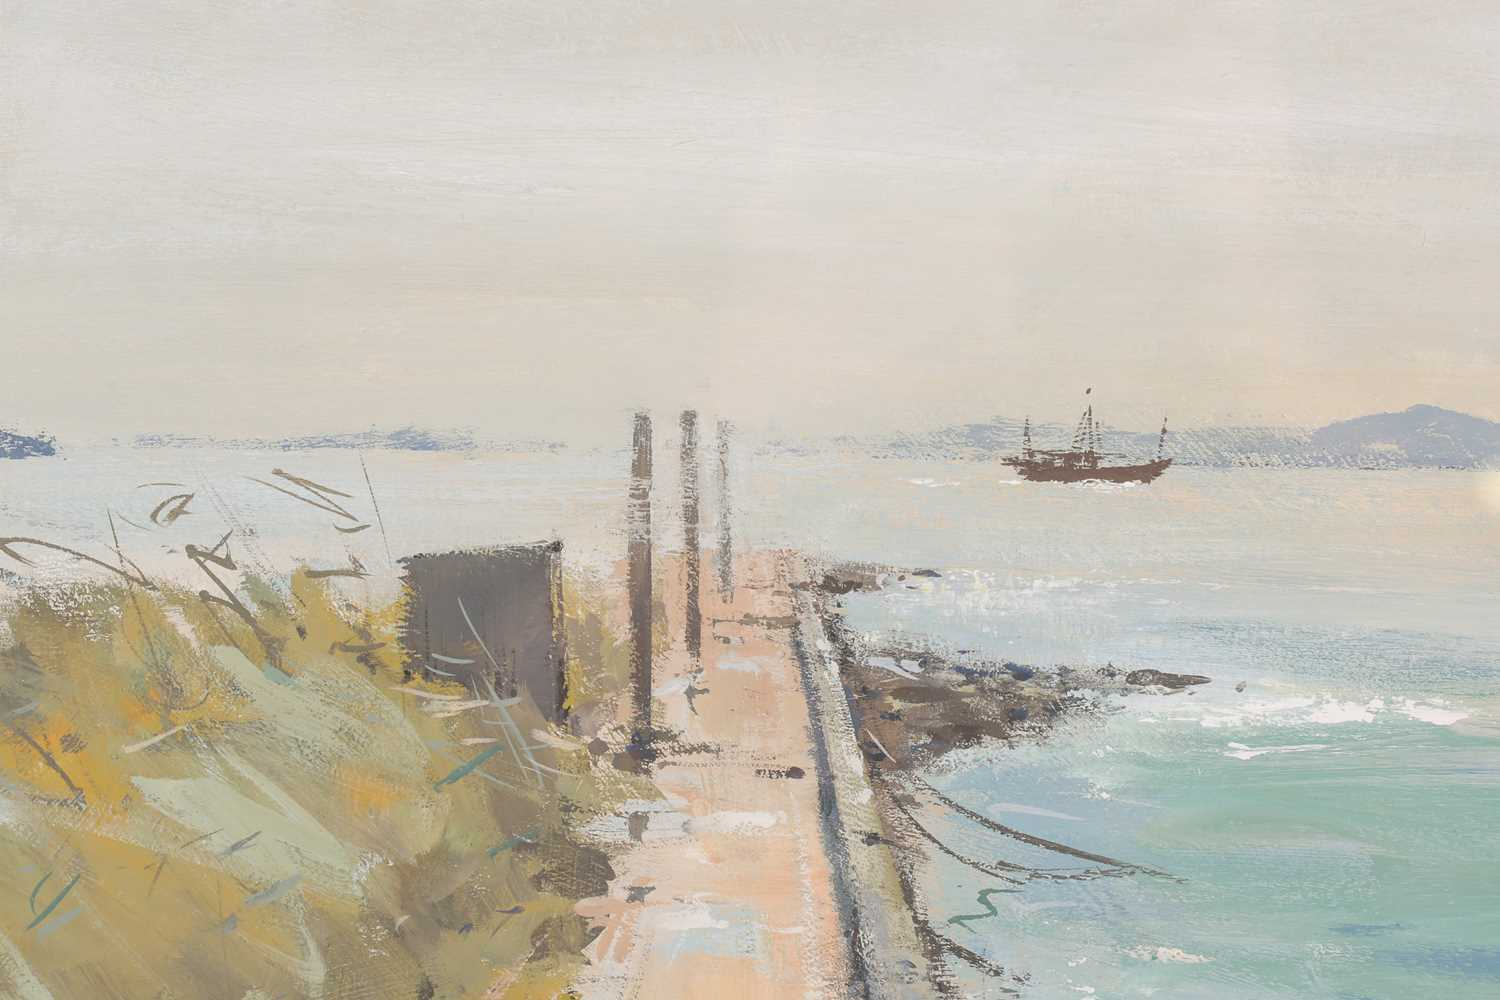 Ian Houston, (1934-2021), Mist Clearing, Tai O, Hong Kong, gouache on board, signed lower left, 25.5 - Image 2 of 4